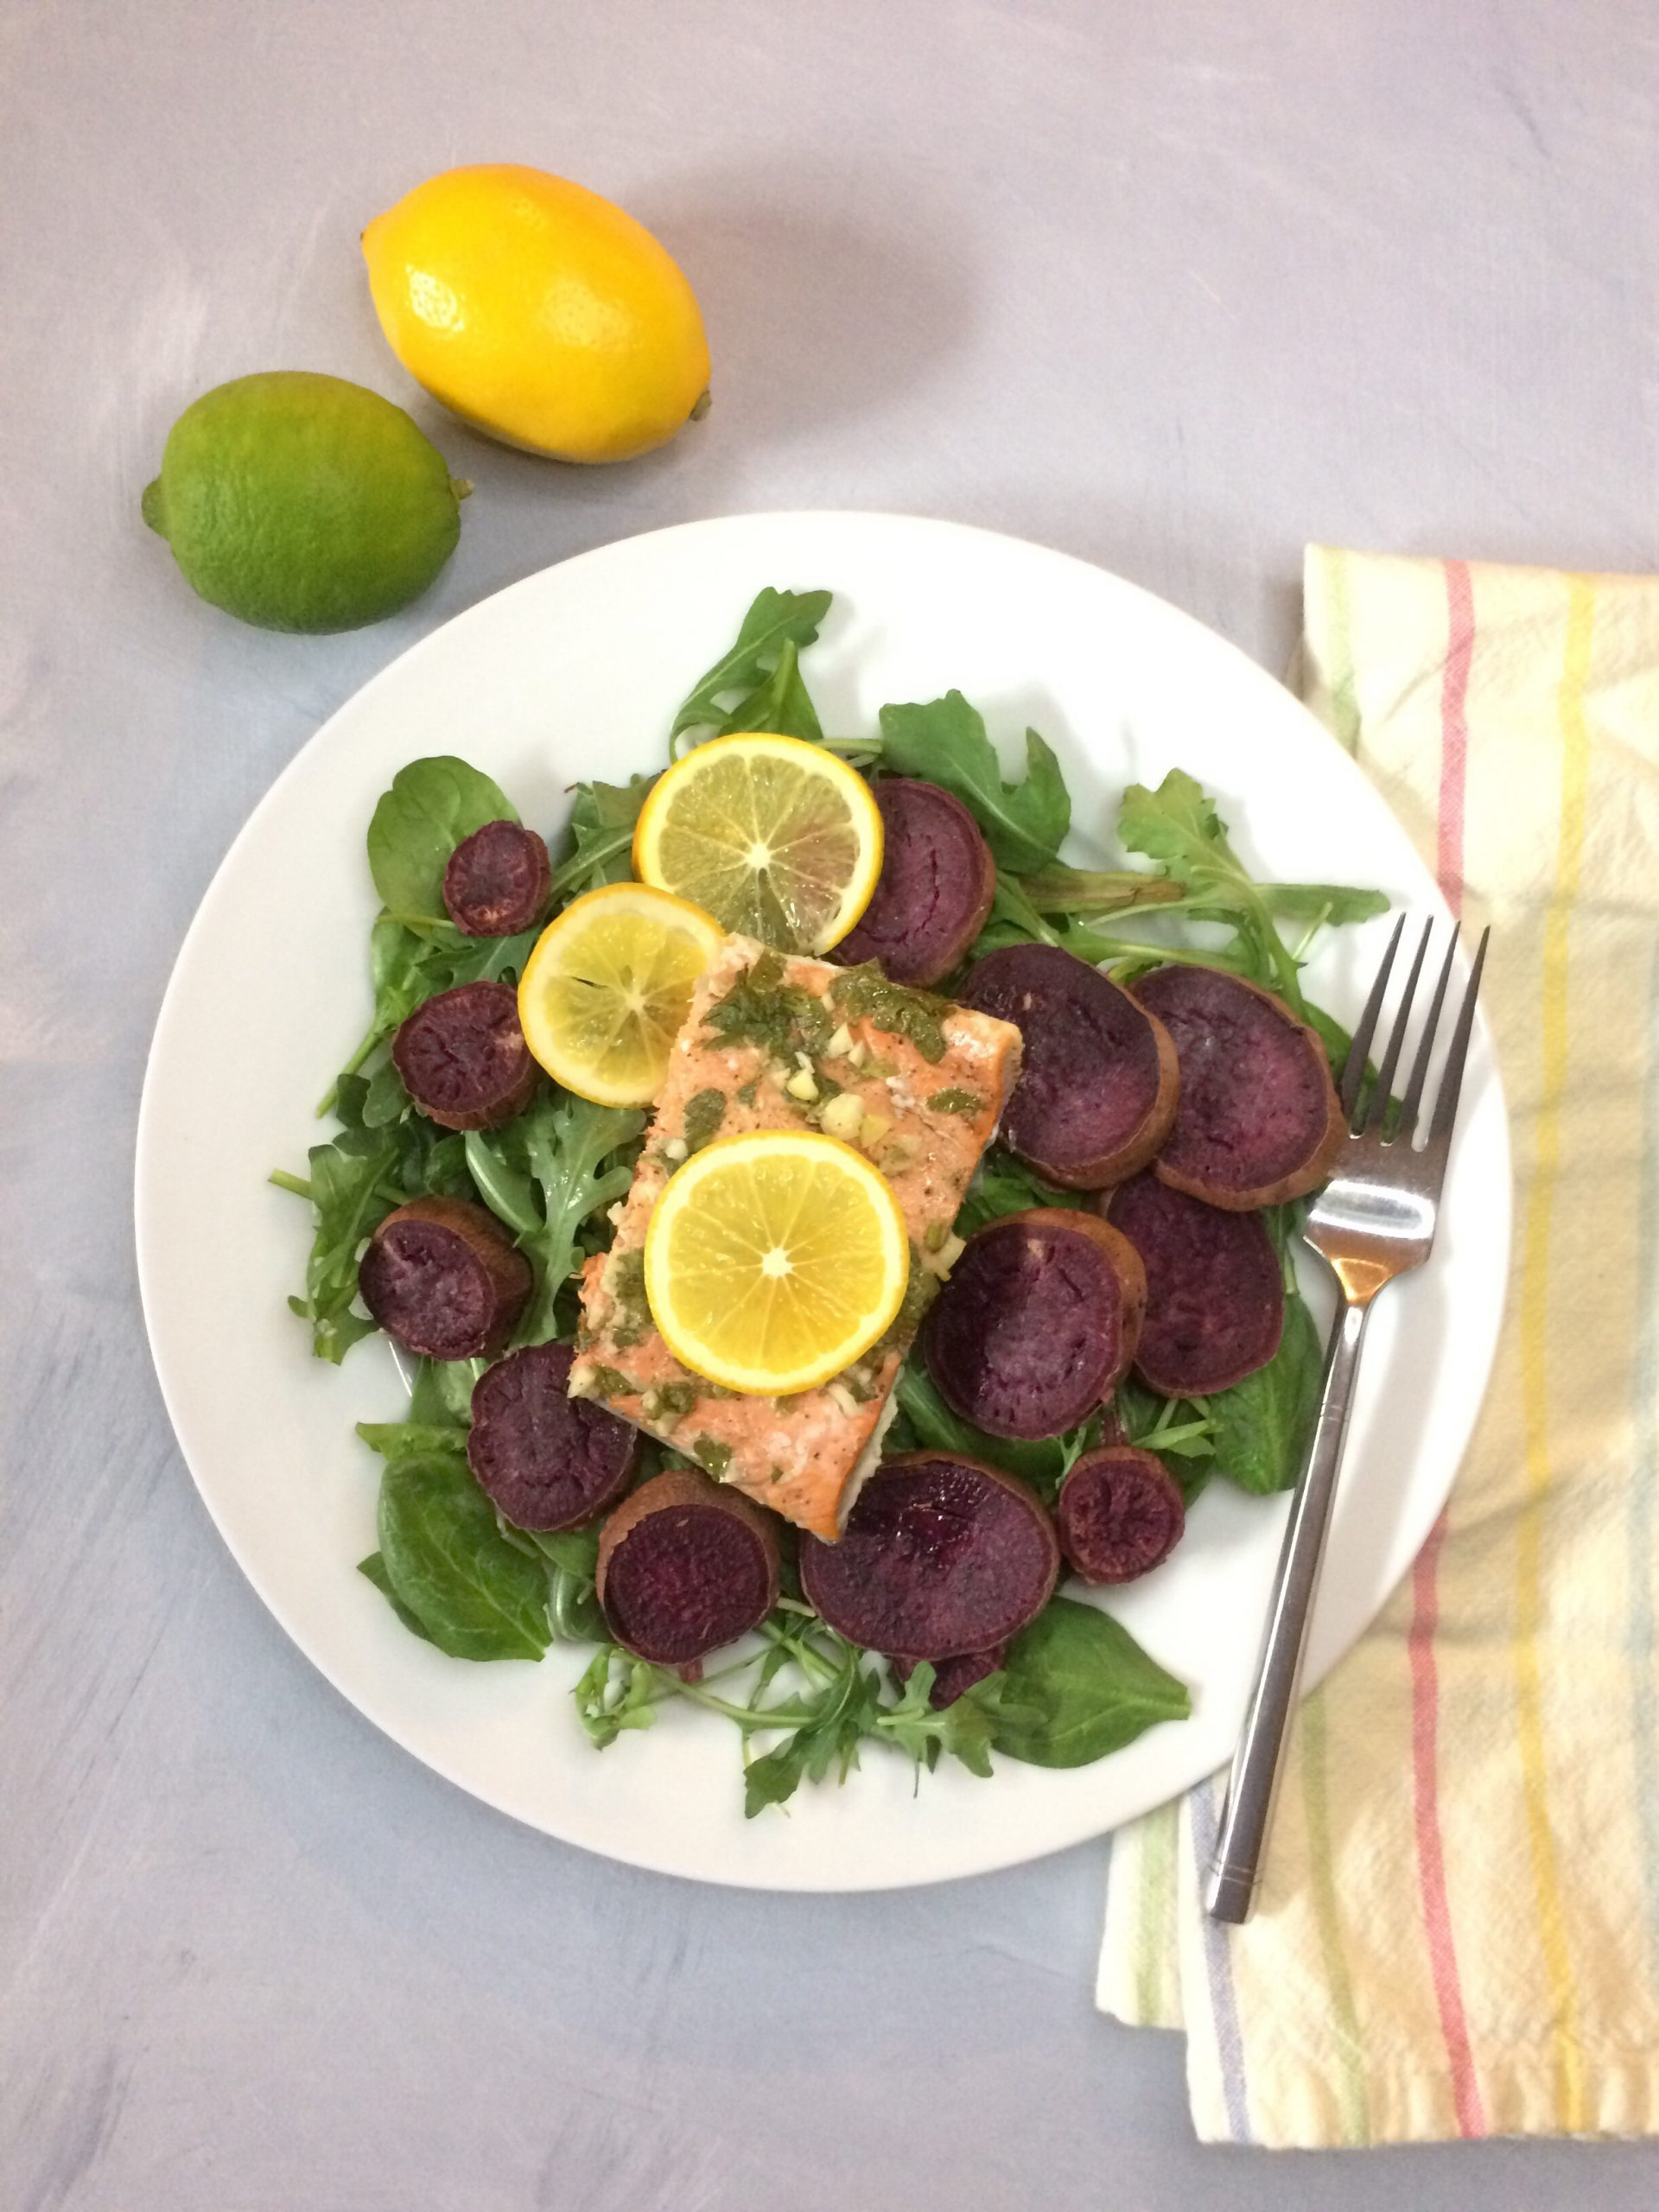 Salmon and Beets - also a source of antioxidants